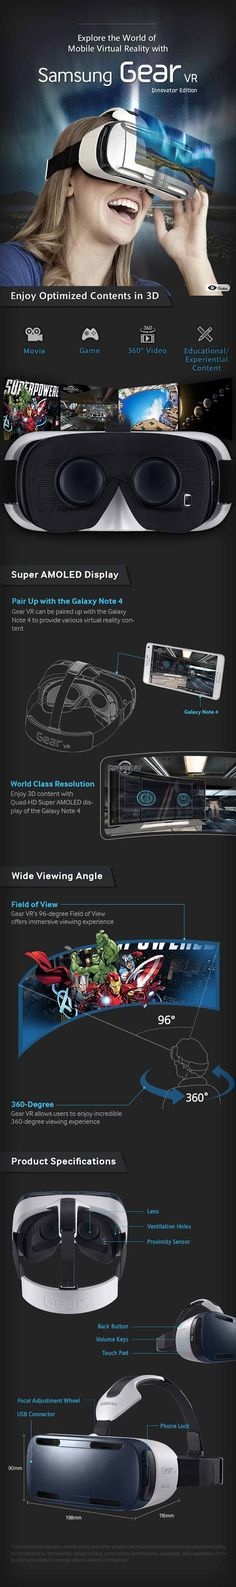 Samsung Galaxy Gear VR (Explore the world of mobile virtual reality)